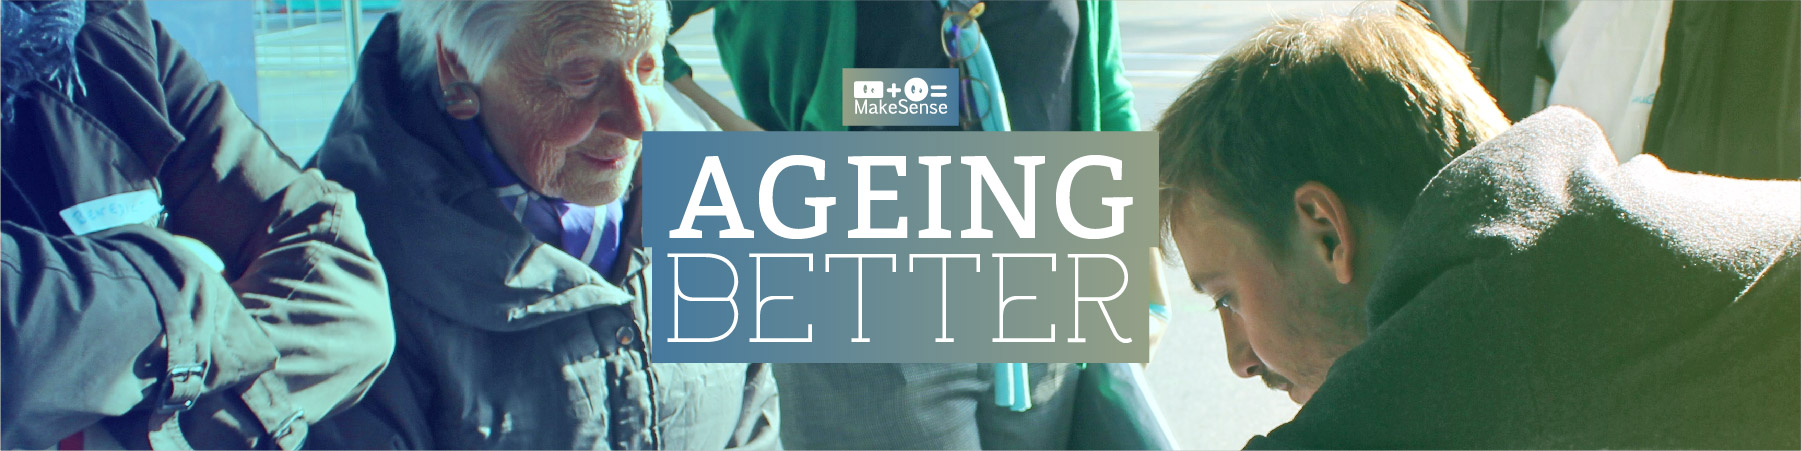 Poster   track   ageing better